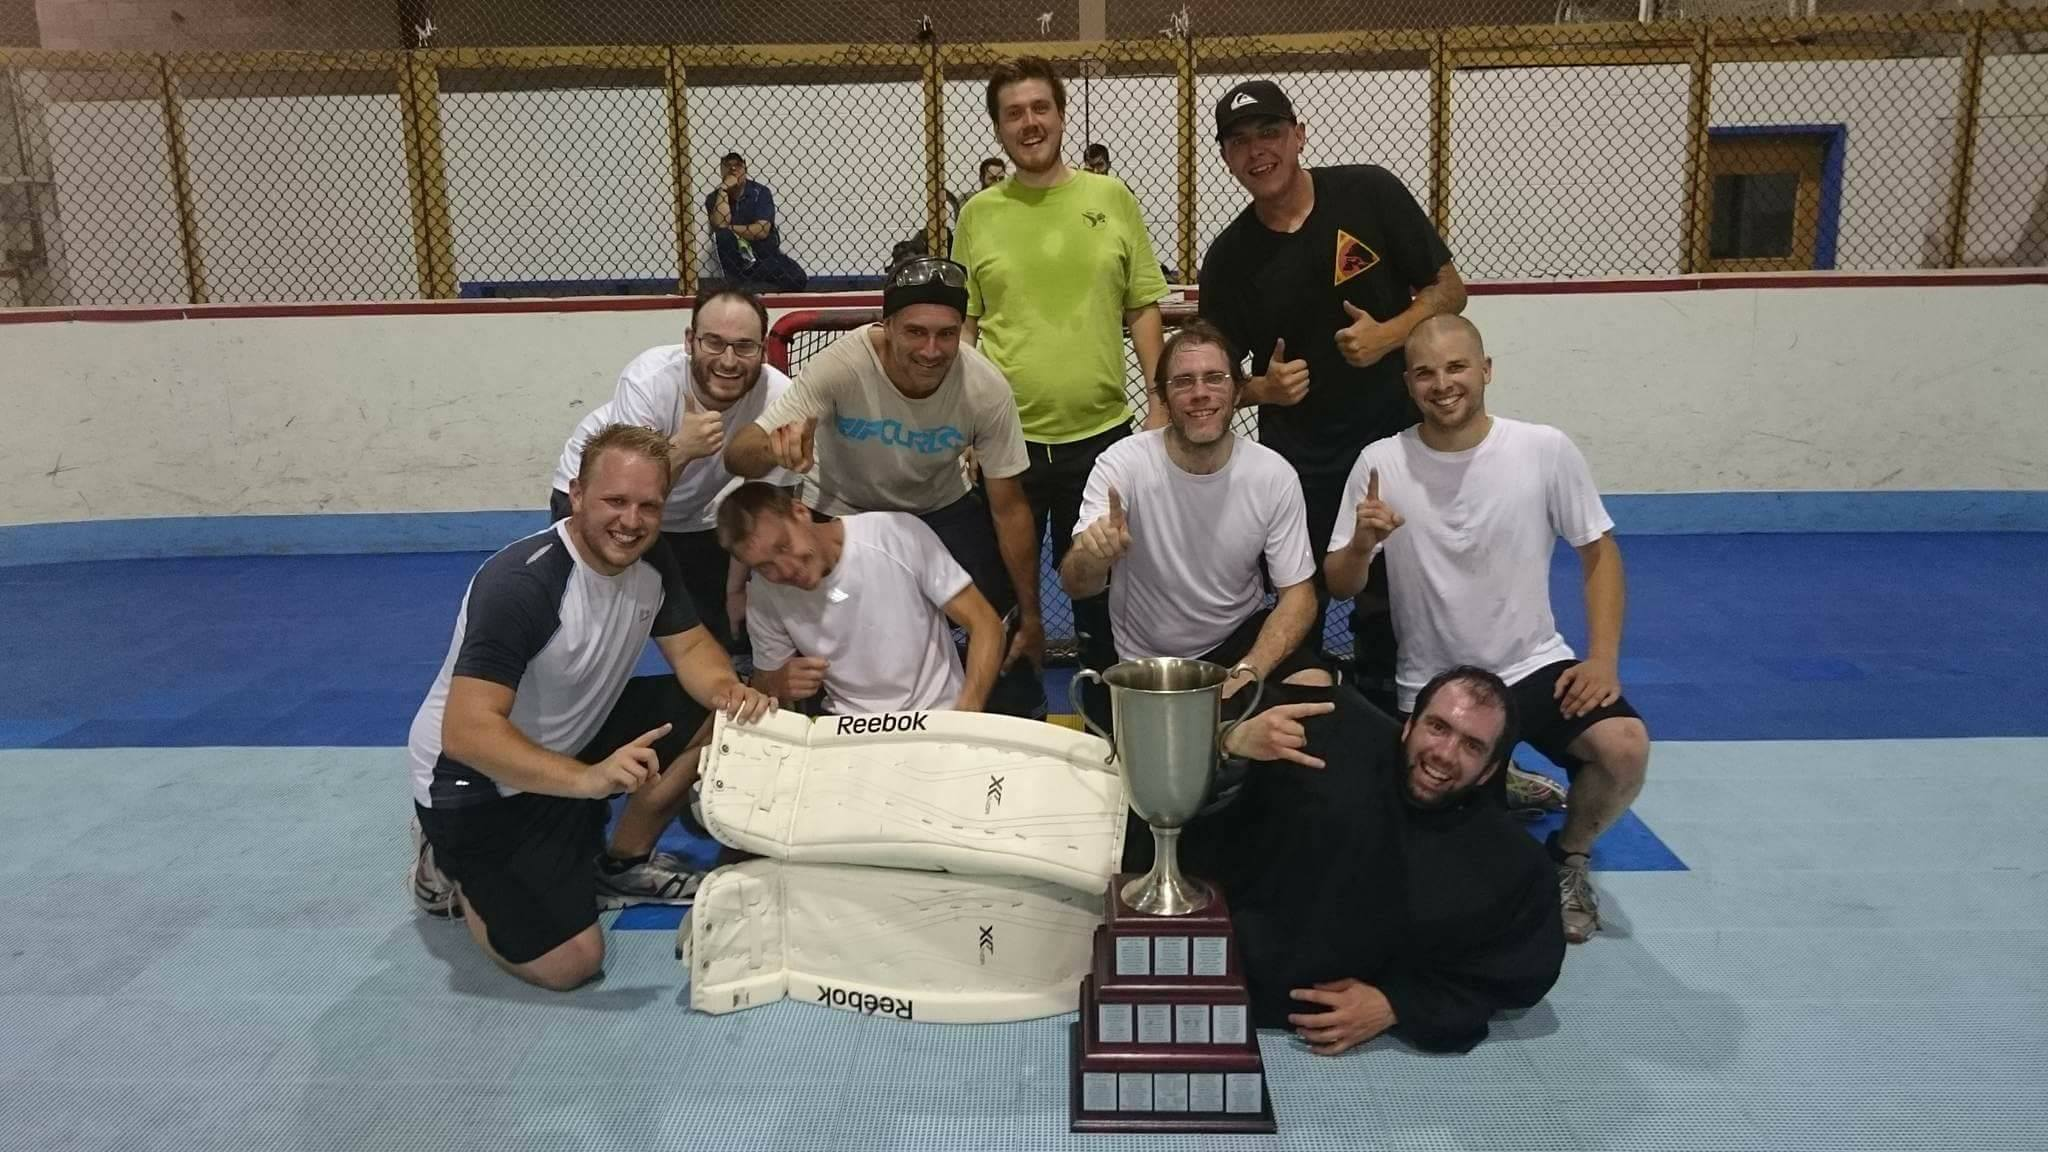 Champions_hockey_cosom_hockey_balle_printemps_2017